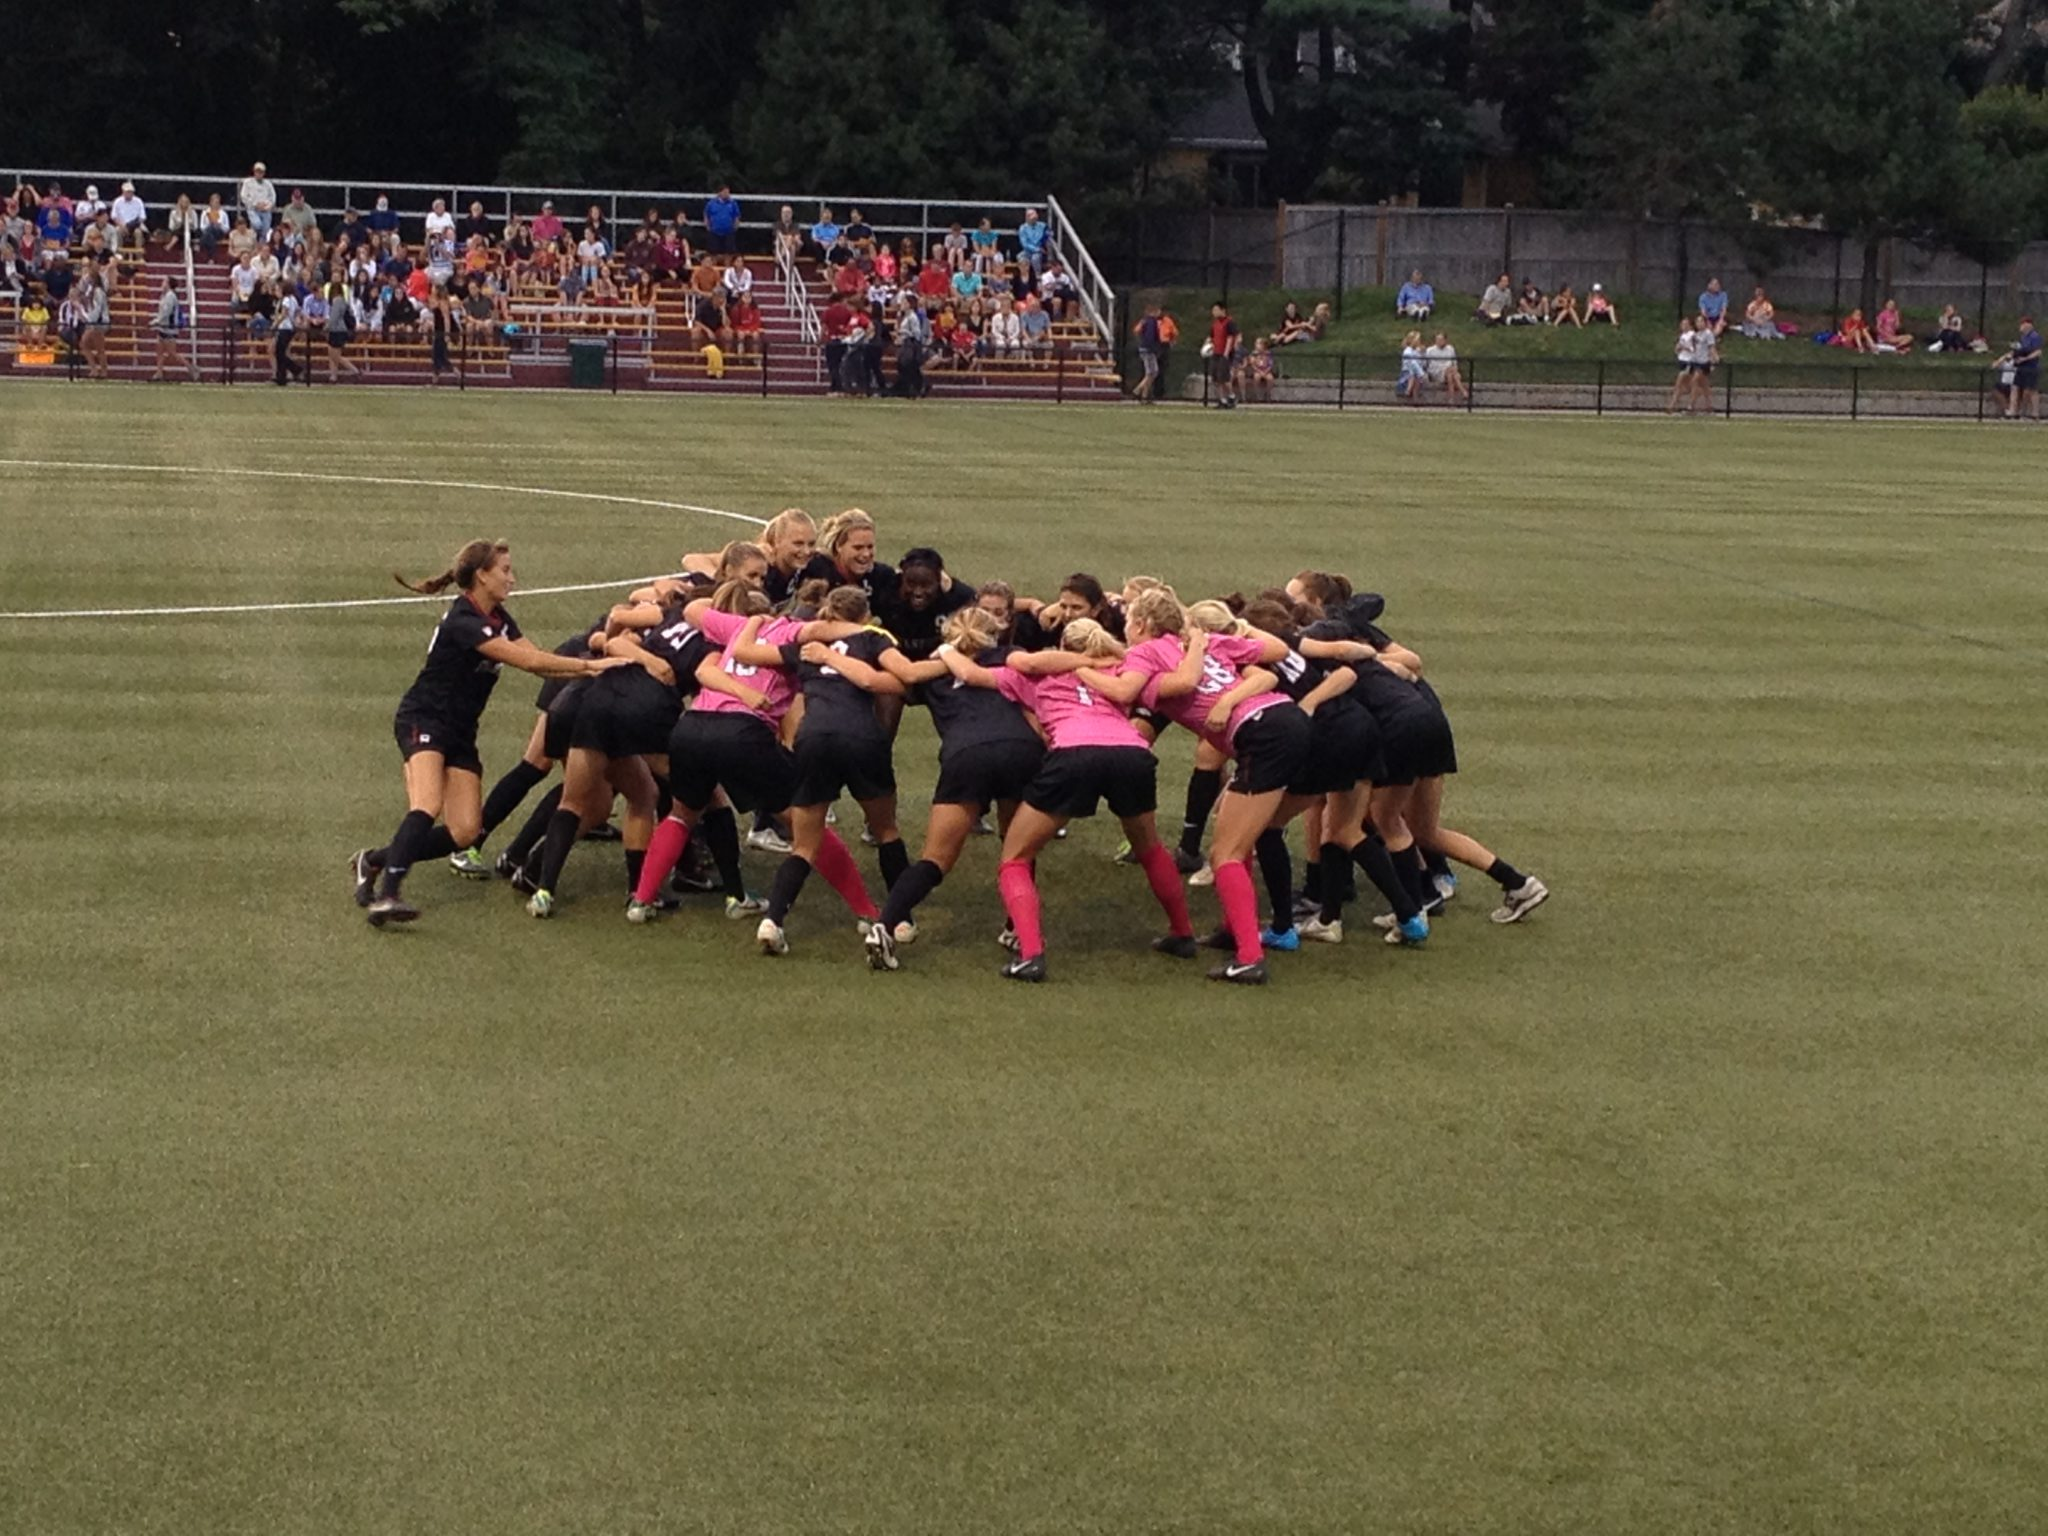 Stanford left the Northeast with two wins on opening weekend. (Photo copyright Meg Linehan for The Equalizer)